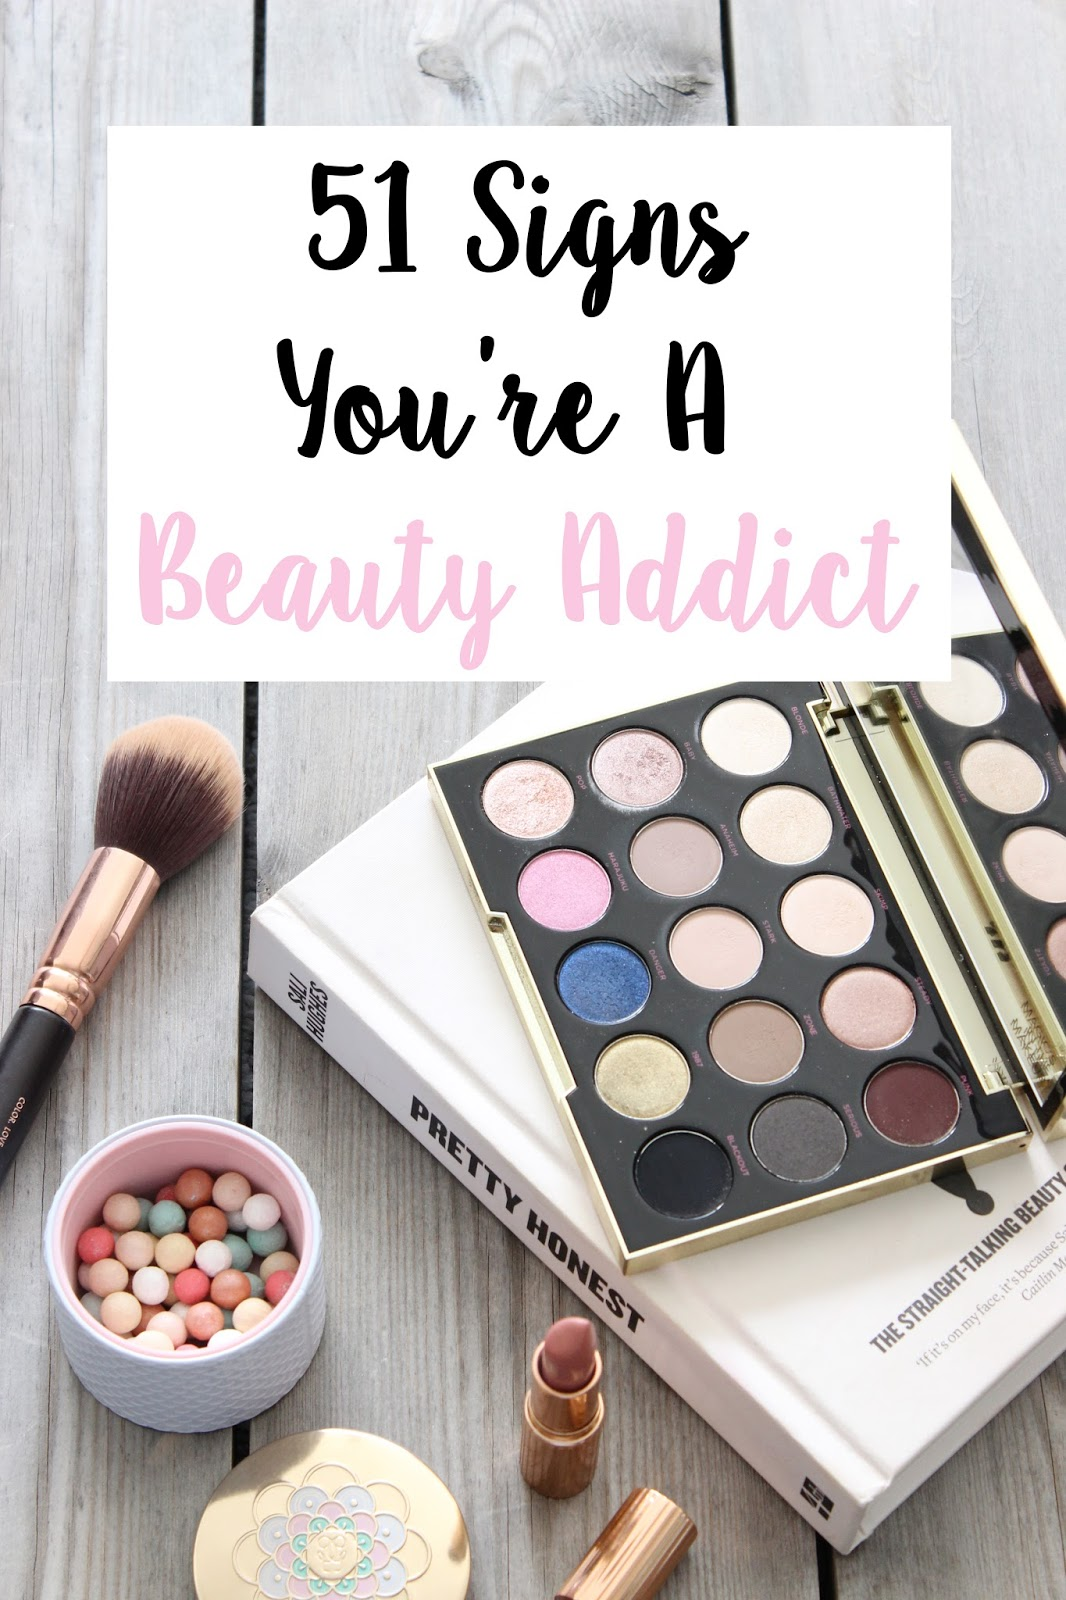 51 Signs You're A Beauty Addict